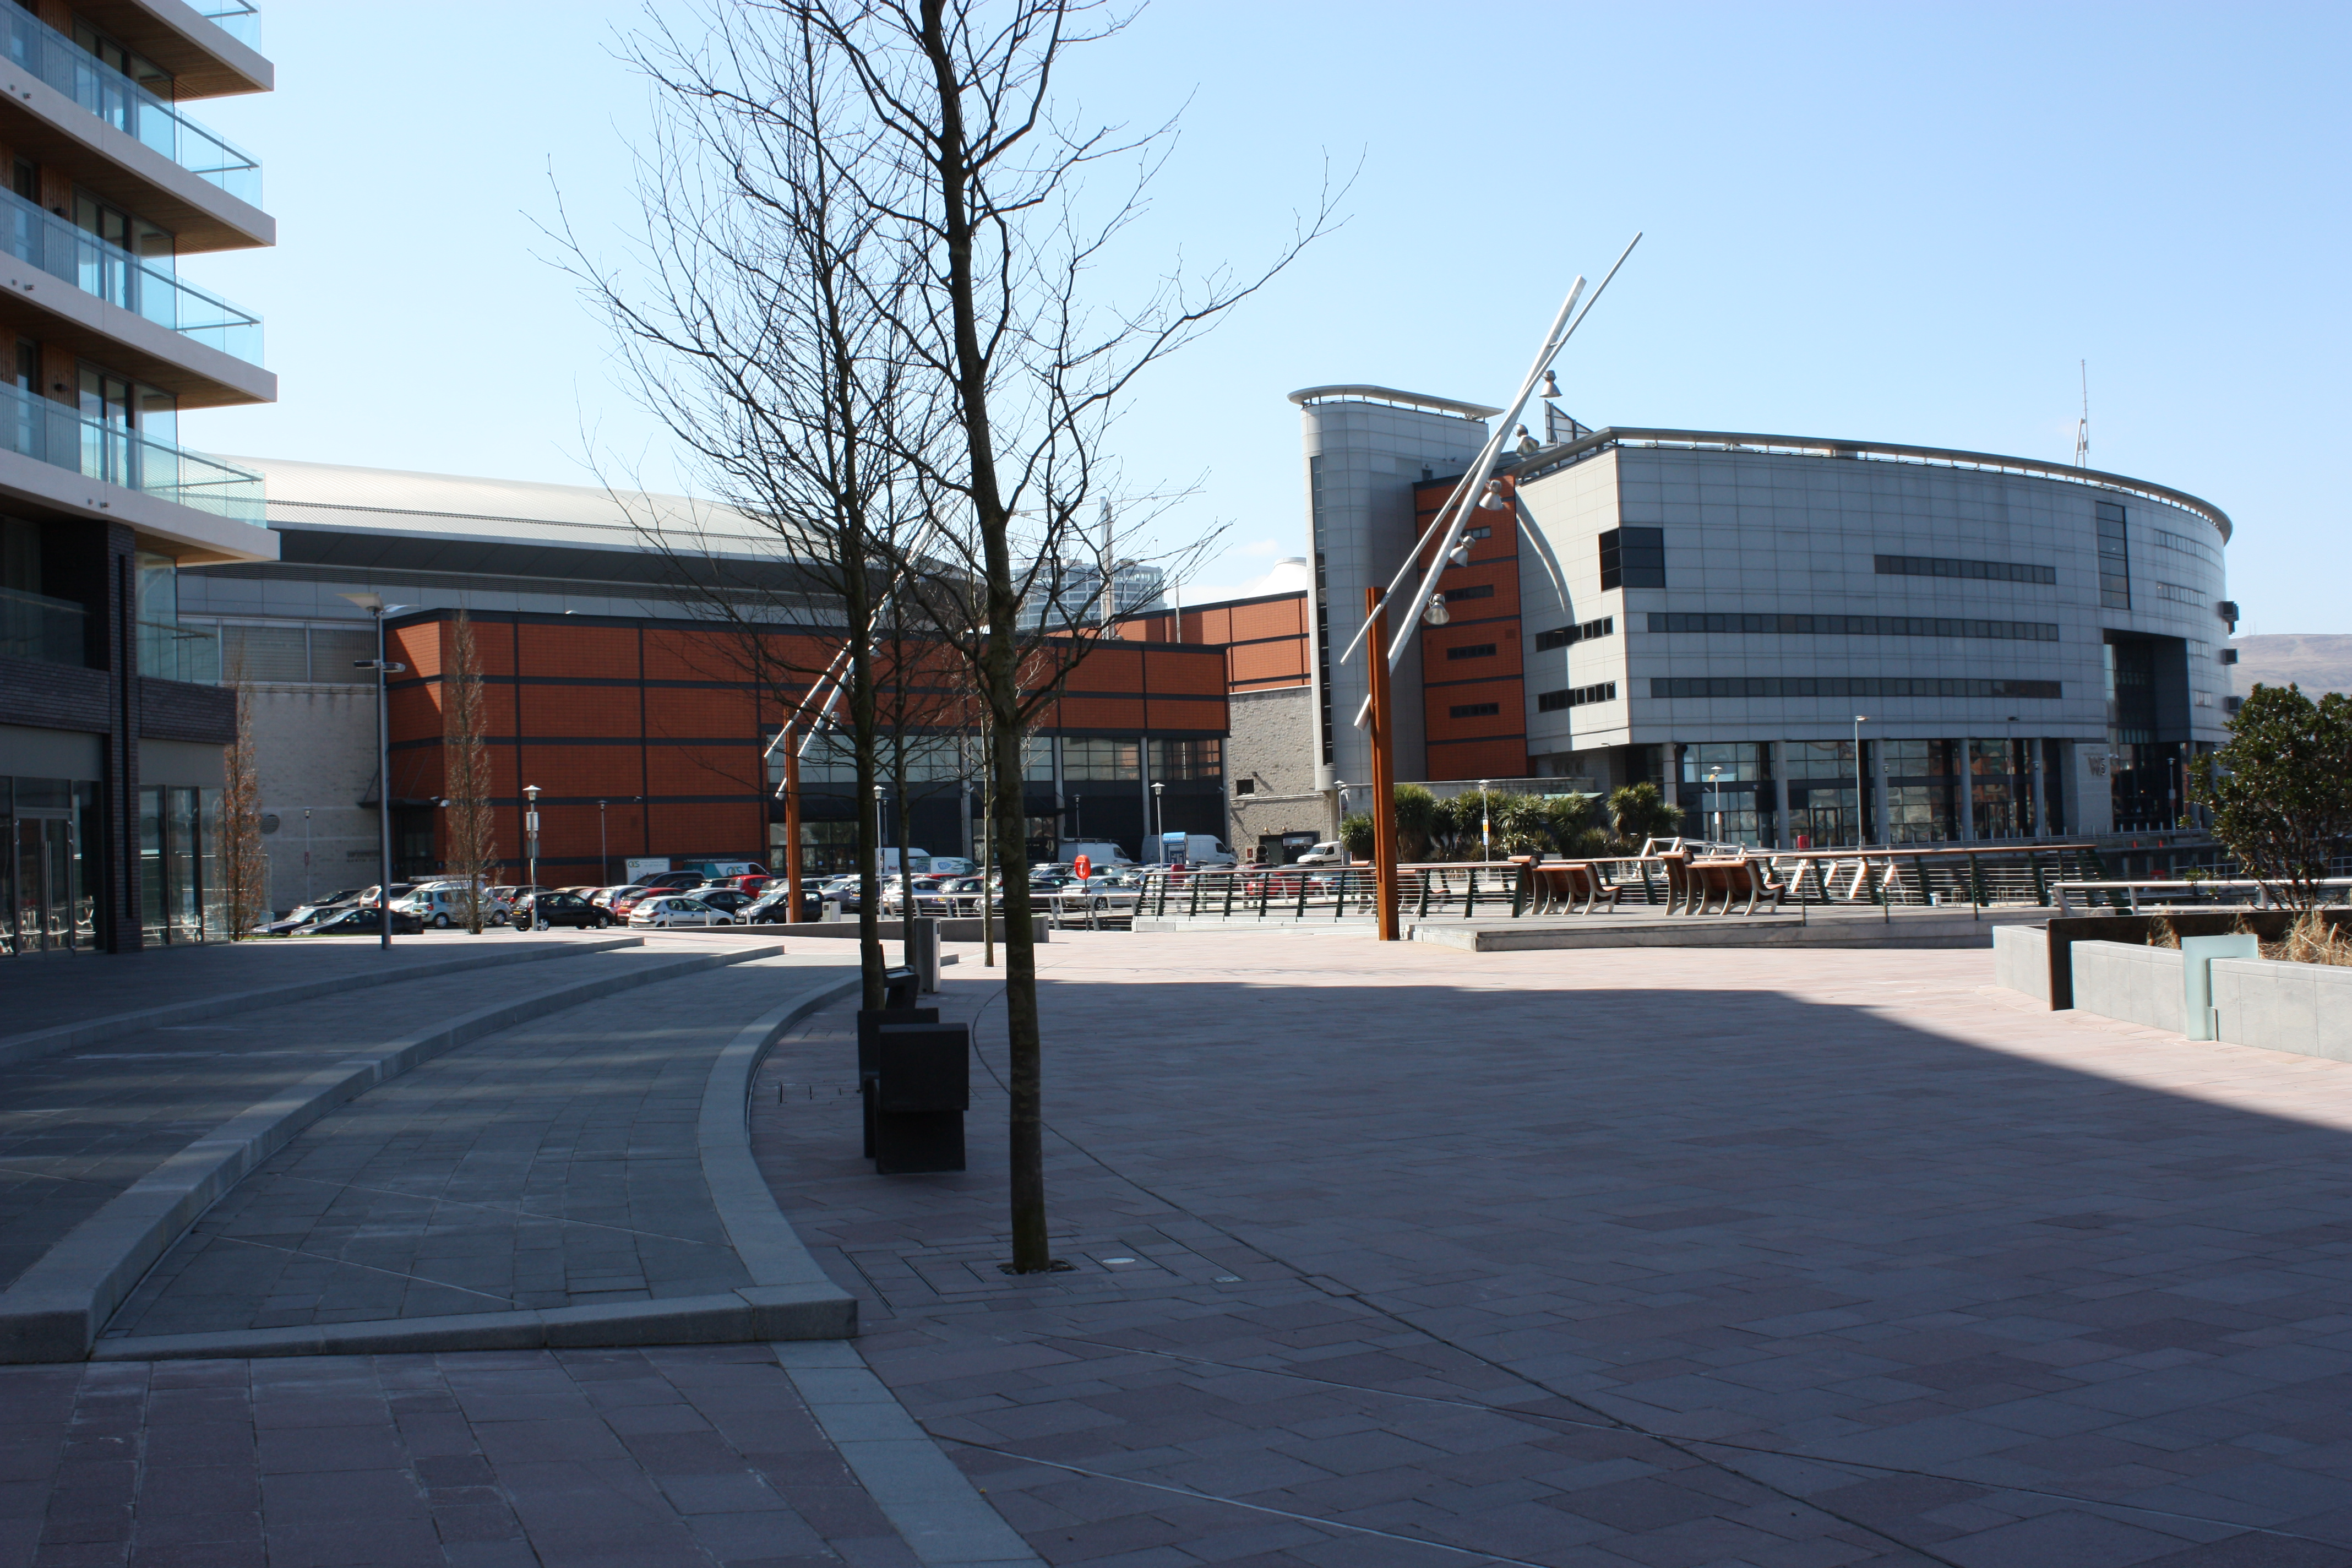 odessay belfast Find information on odyssey arena located in belfast northern ireland managed by smg europe - venues for every event.